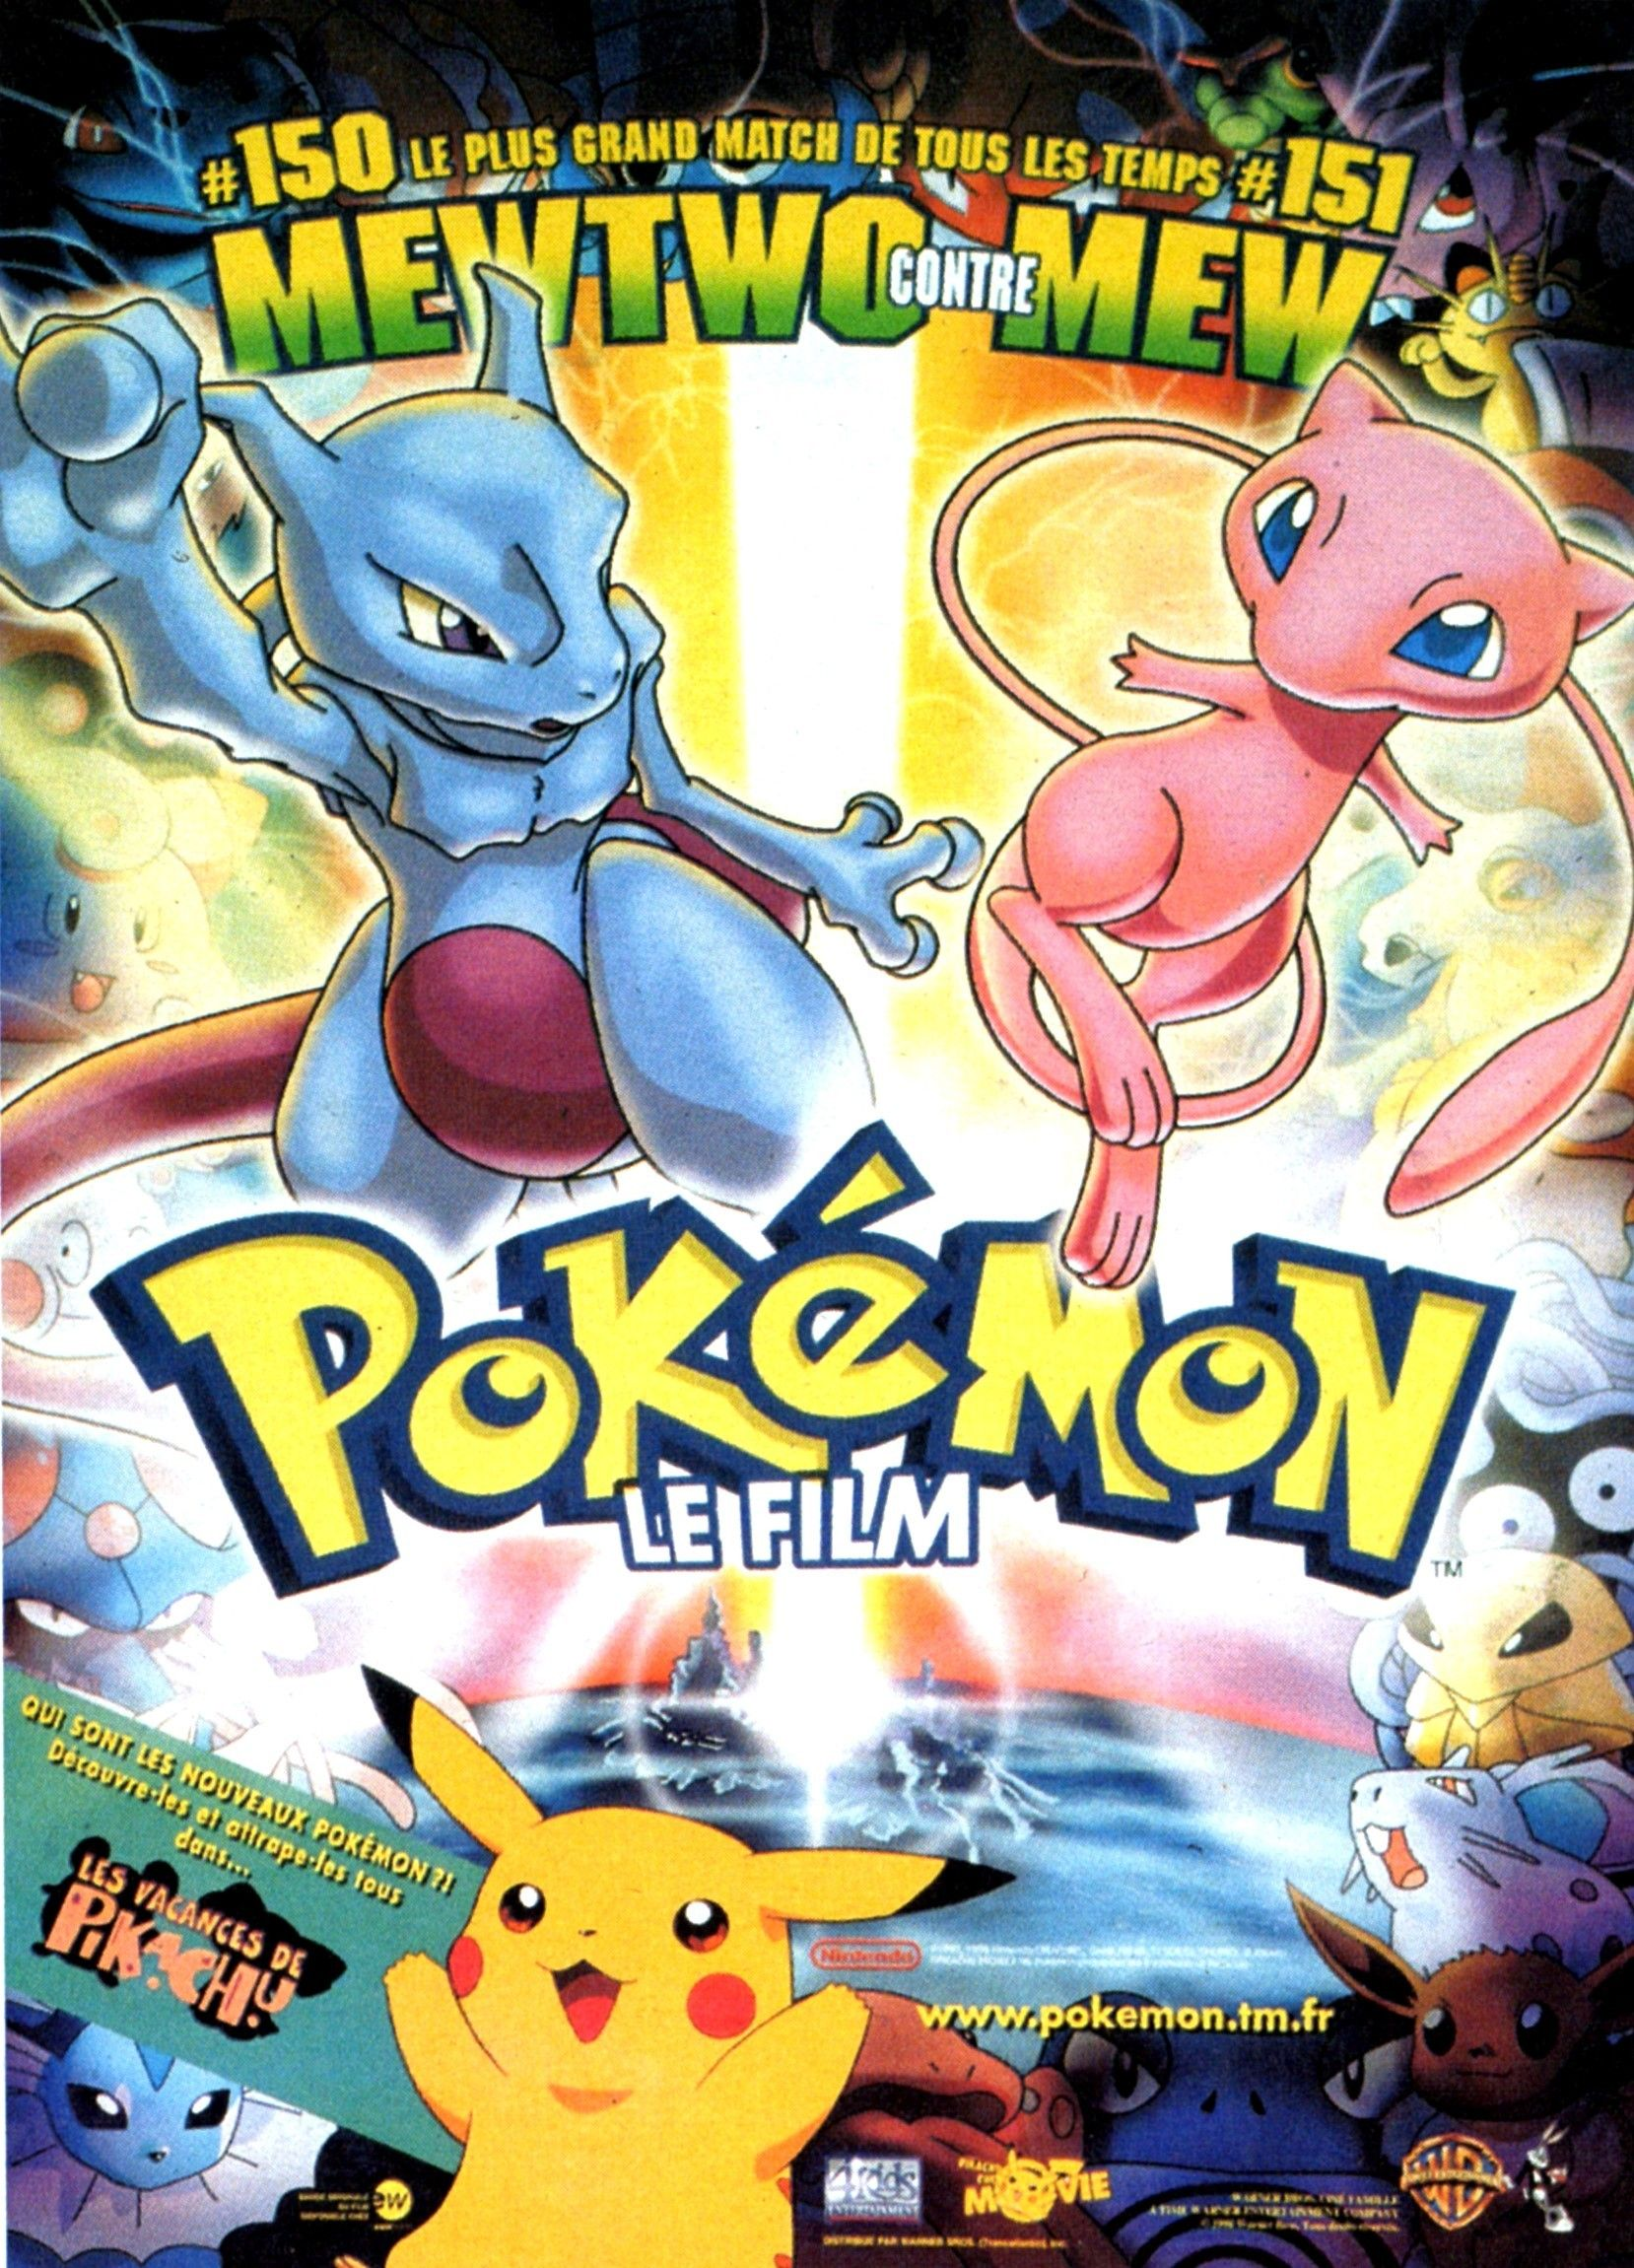 Pokémon Le Film Long Métrage Danimation 1998